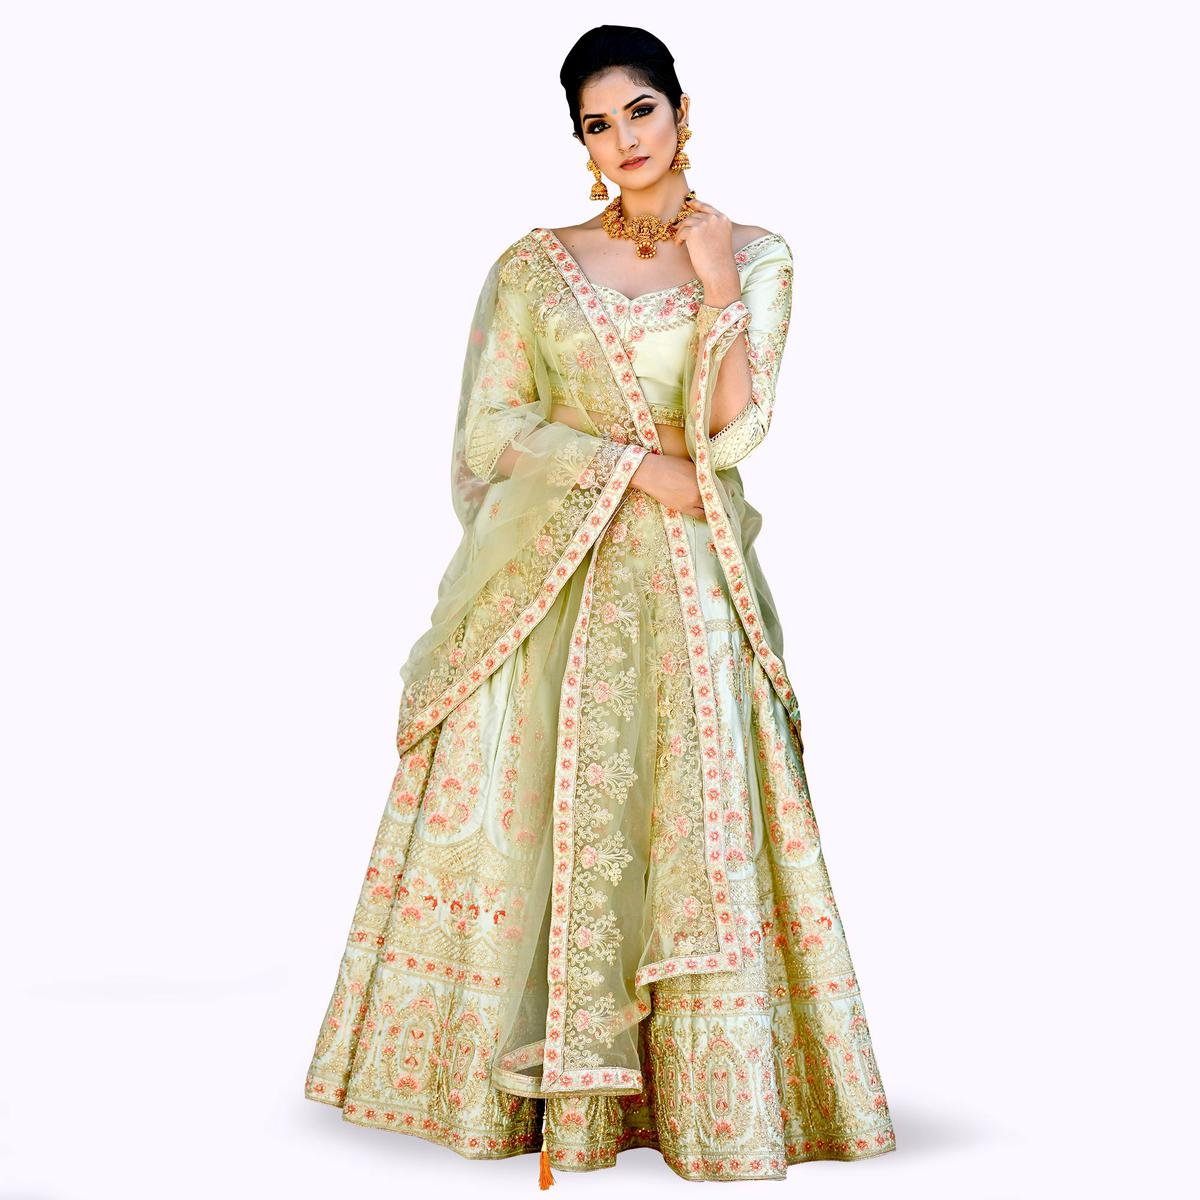 Intricate Olive Green Colored Partywear Embroidered Satin Lehenga Choli